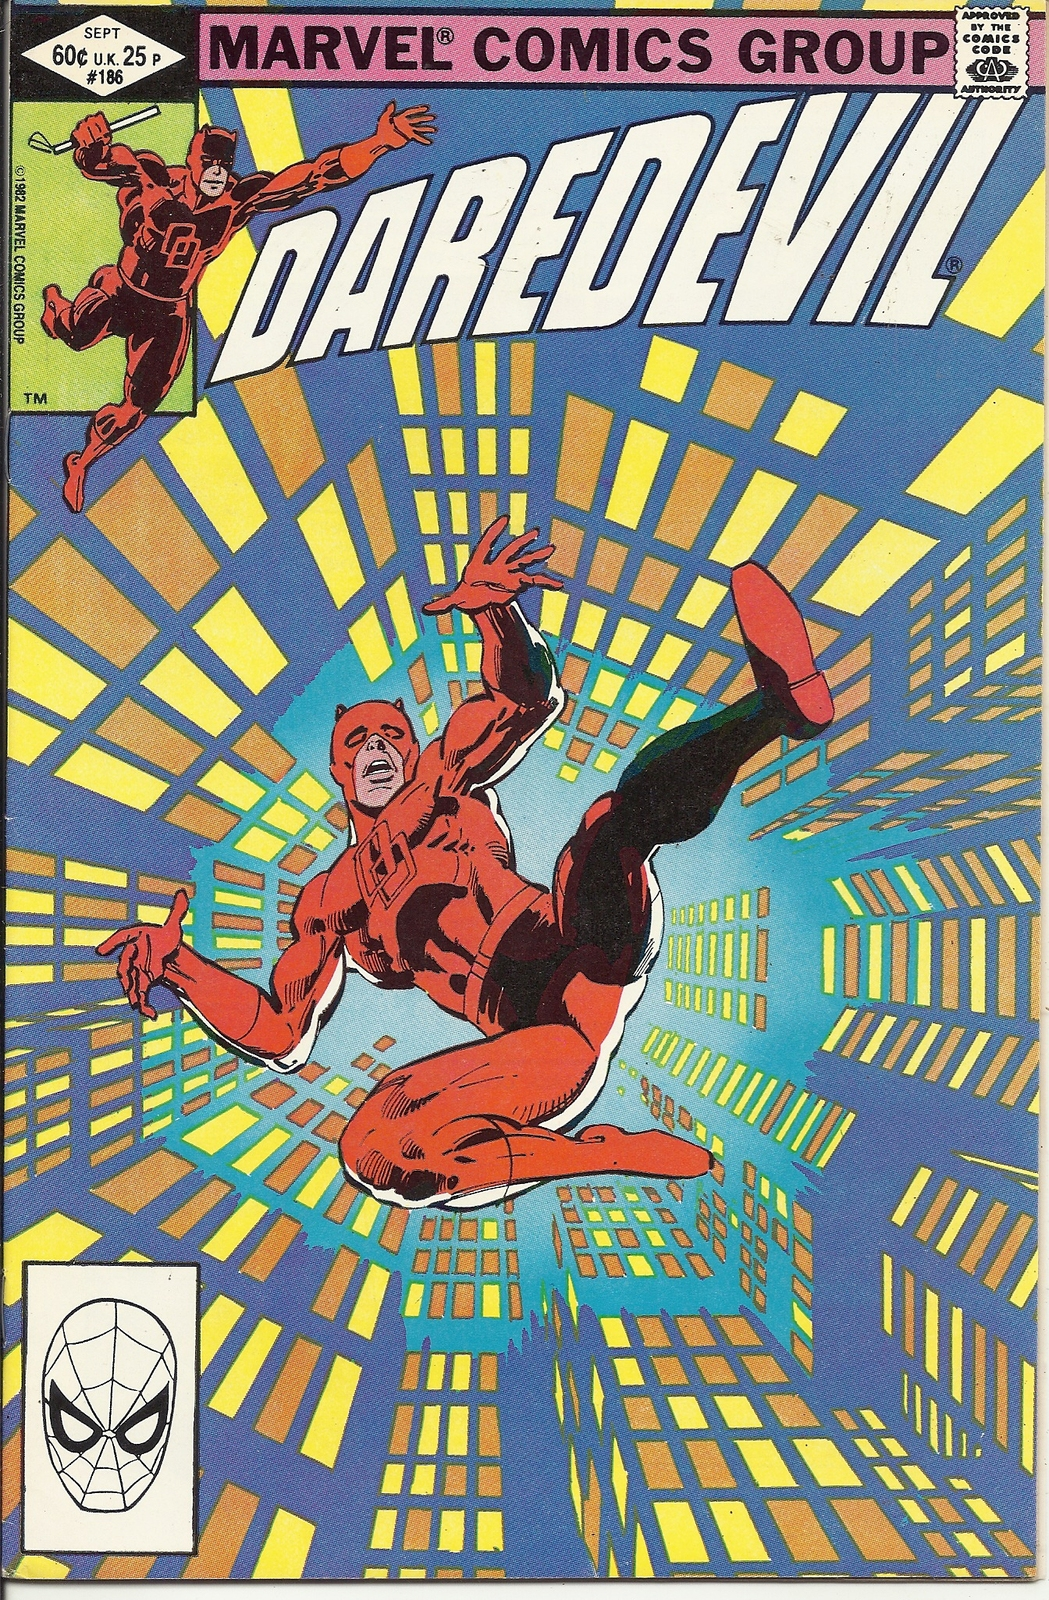 (CB-11) 1982 Marvel Comic Book: Daredevil #186